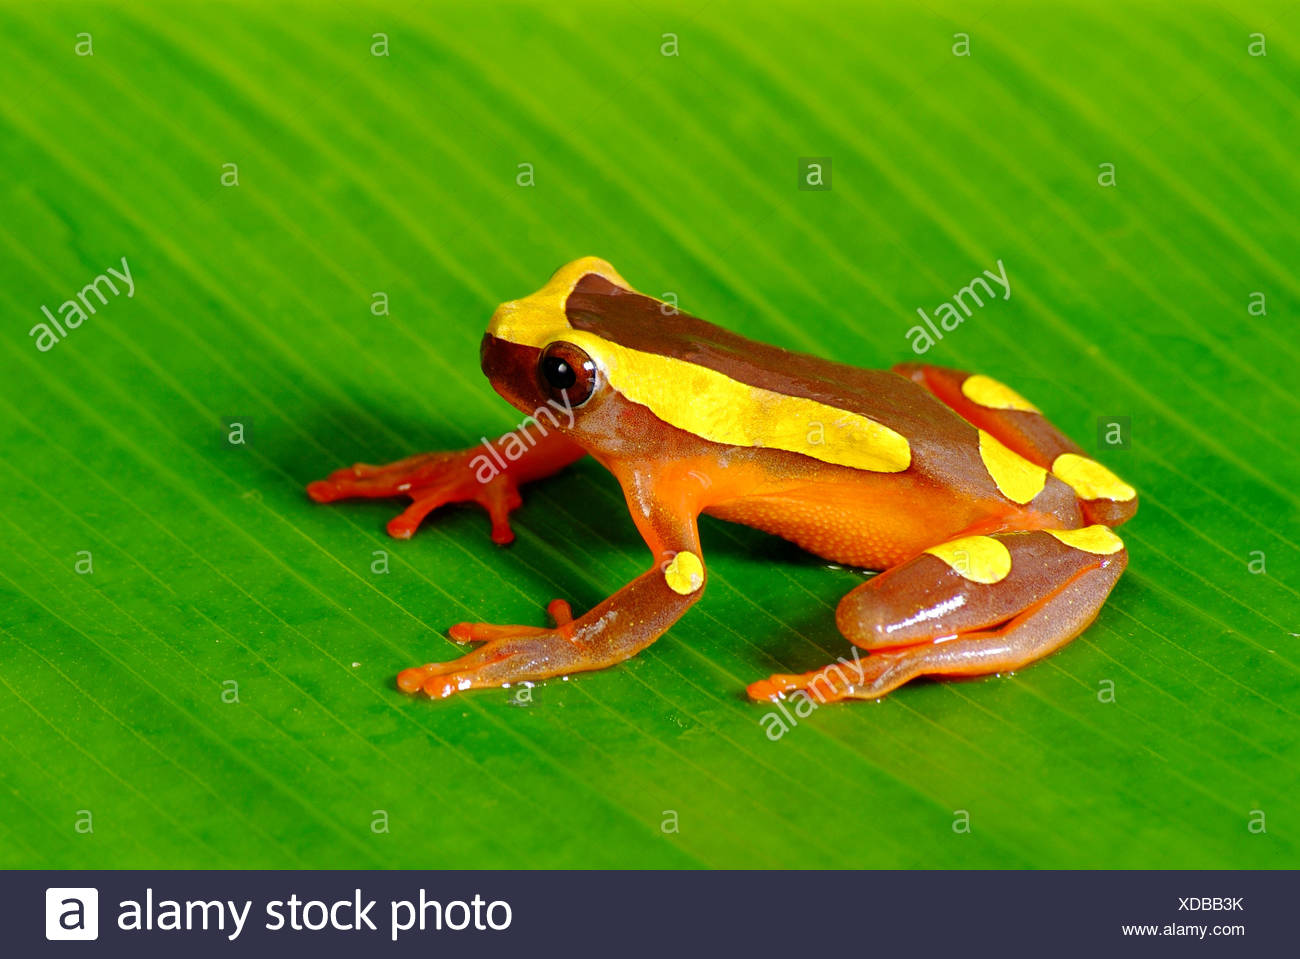 Dendropsophus bifurcus, Hylidae, 2009  23 to 27 mm lenght male - Stock Image